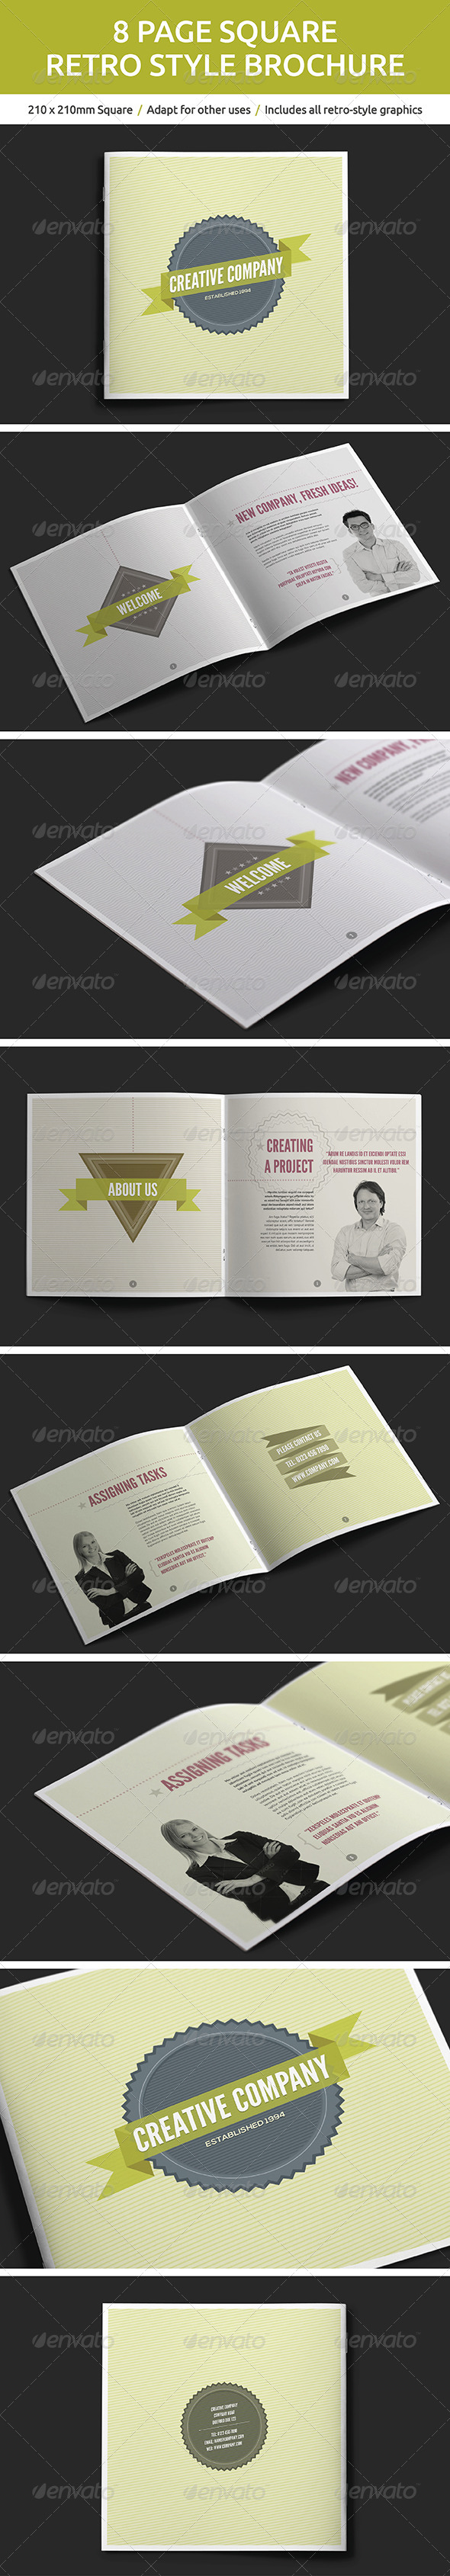 GraphicRiver 8 Page Square Retro Style Brochure 5507647